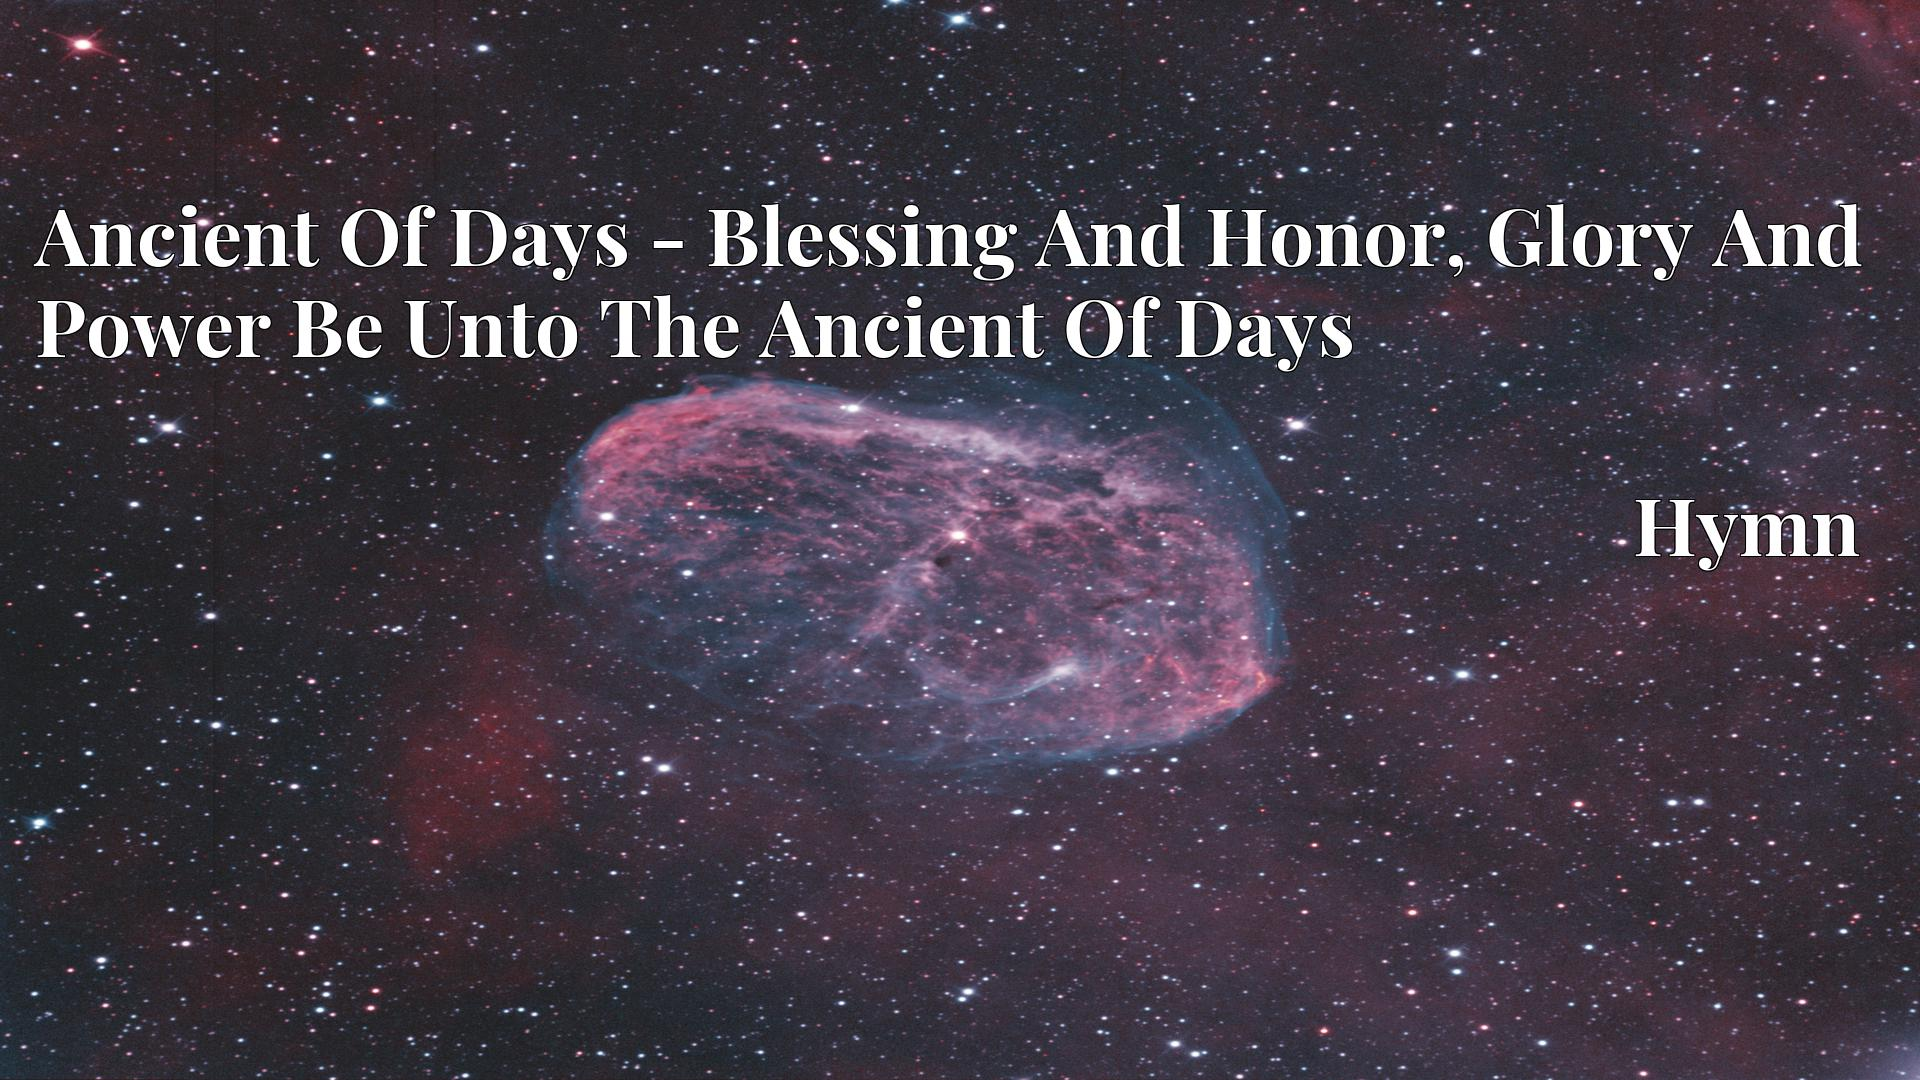 Ancient Of Days - Blessing And Honor, Glory And Power Be Unto The Ancient Of Days - Hymn